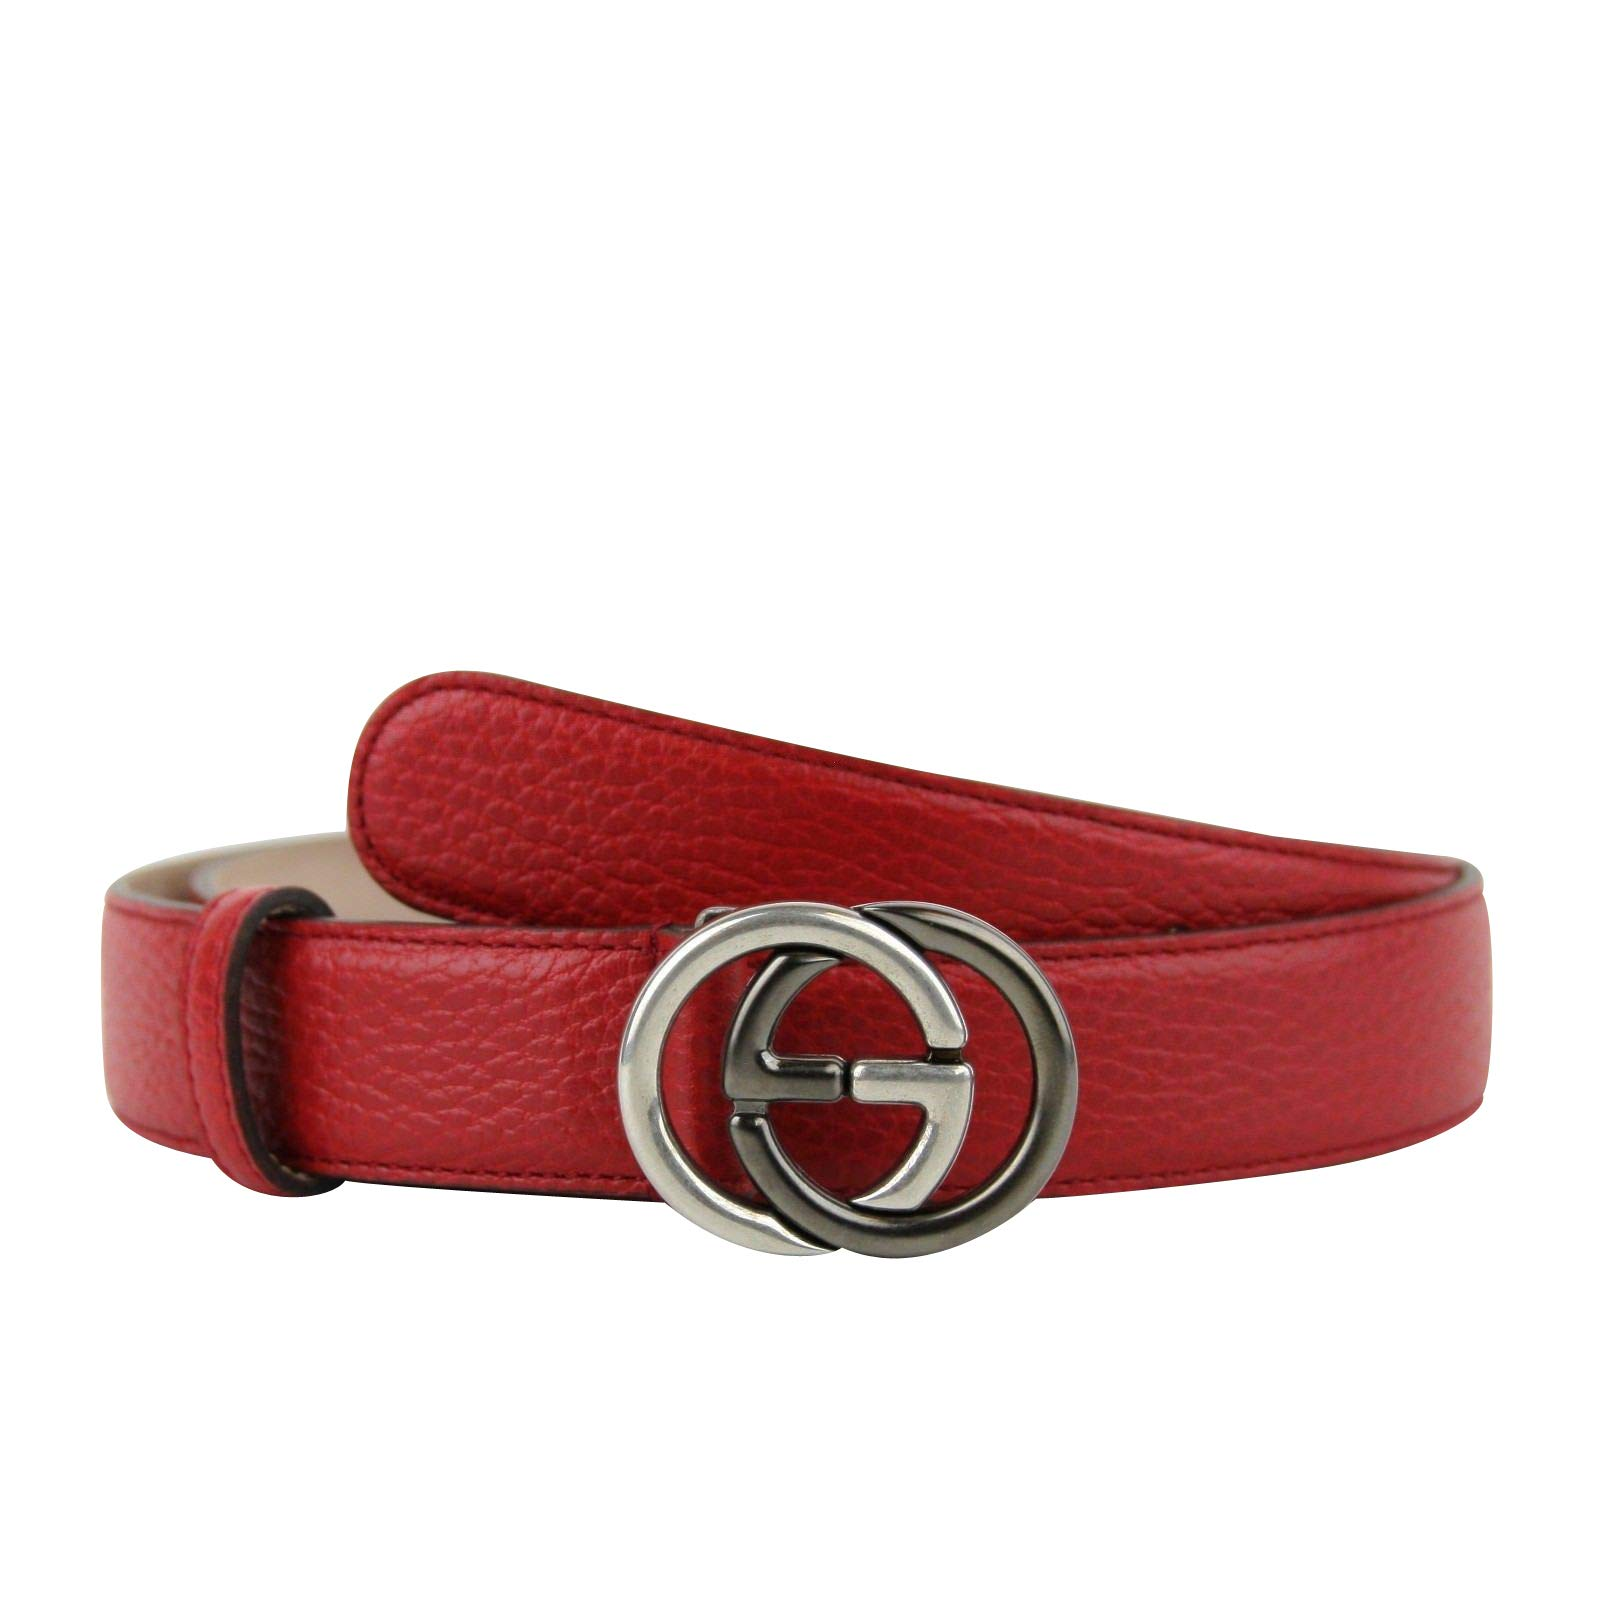 Gucci Unisex Interlocking G Red Leather With Silver/Black Buckle Belt 295704 6420 (105/42)